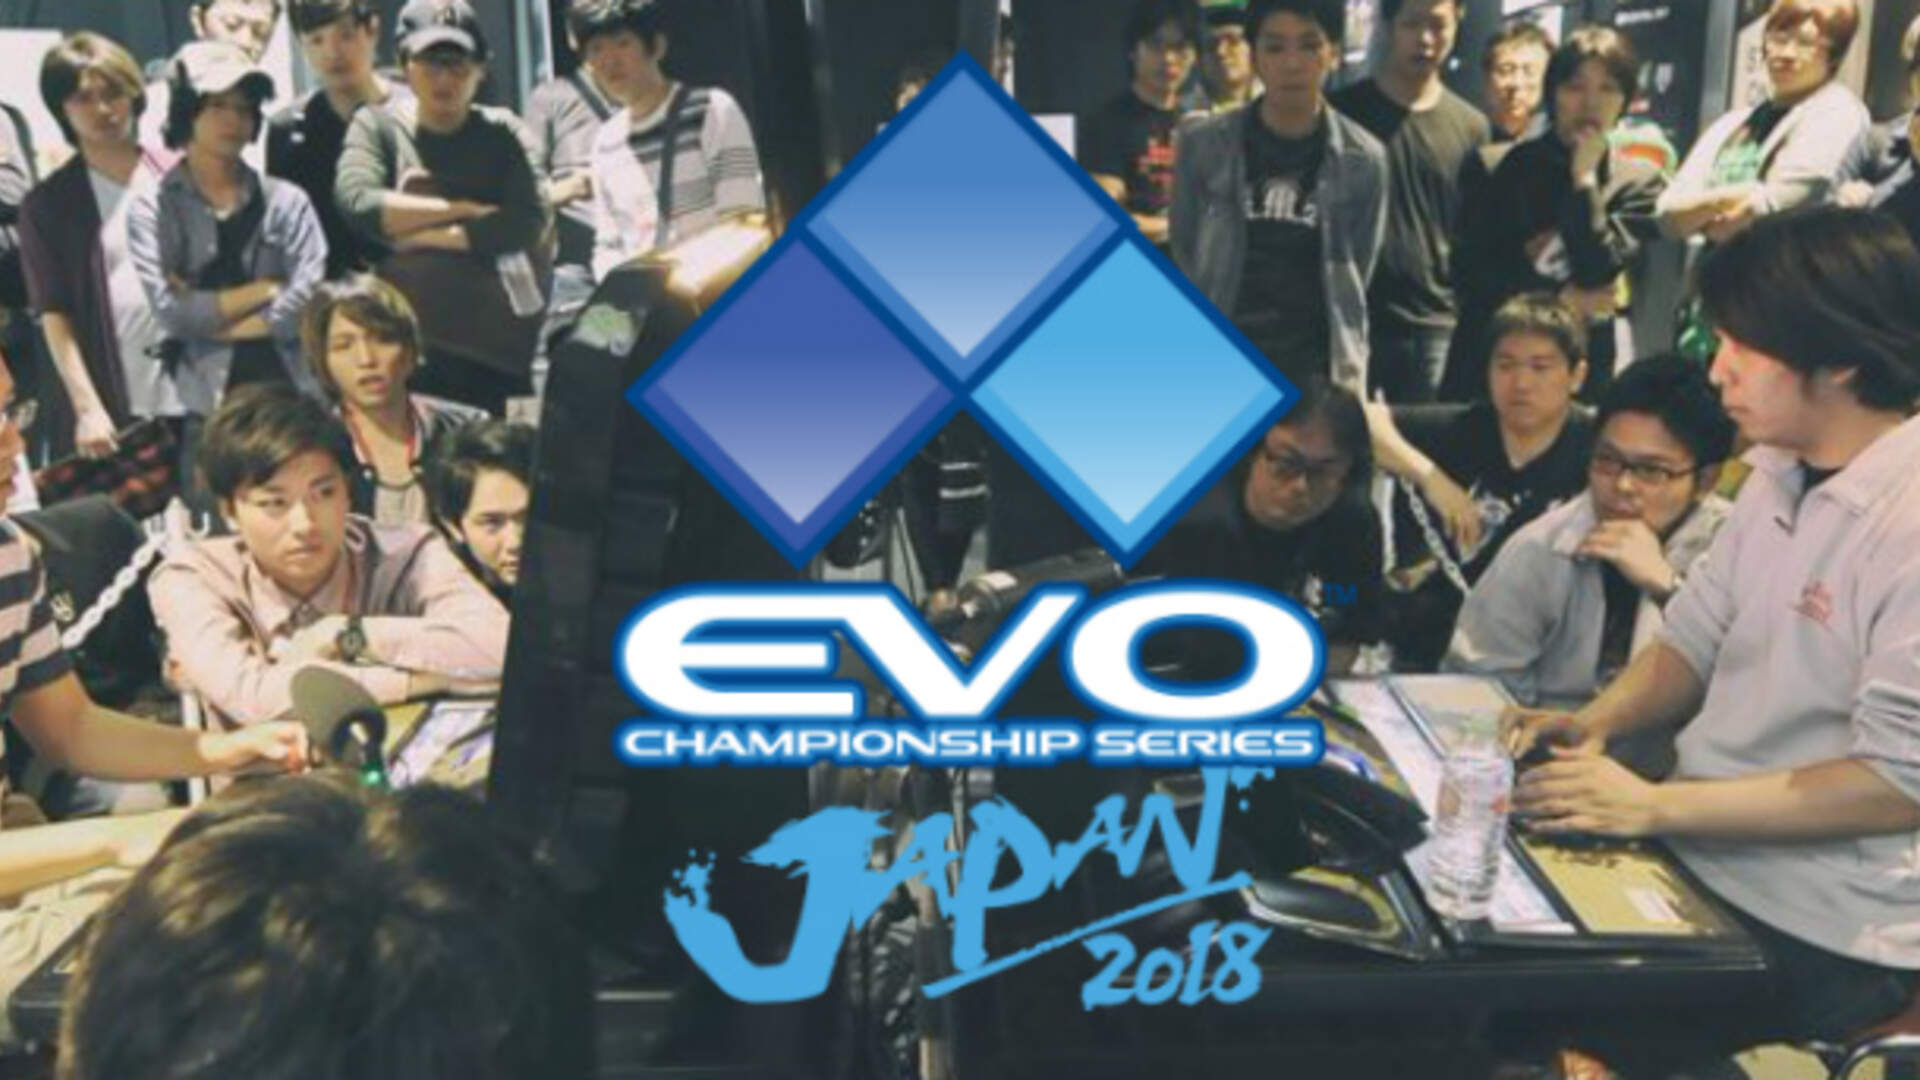 Arms and Street Fighter 5 Are Headliners At Evo Japan 2018